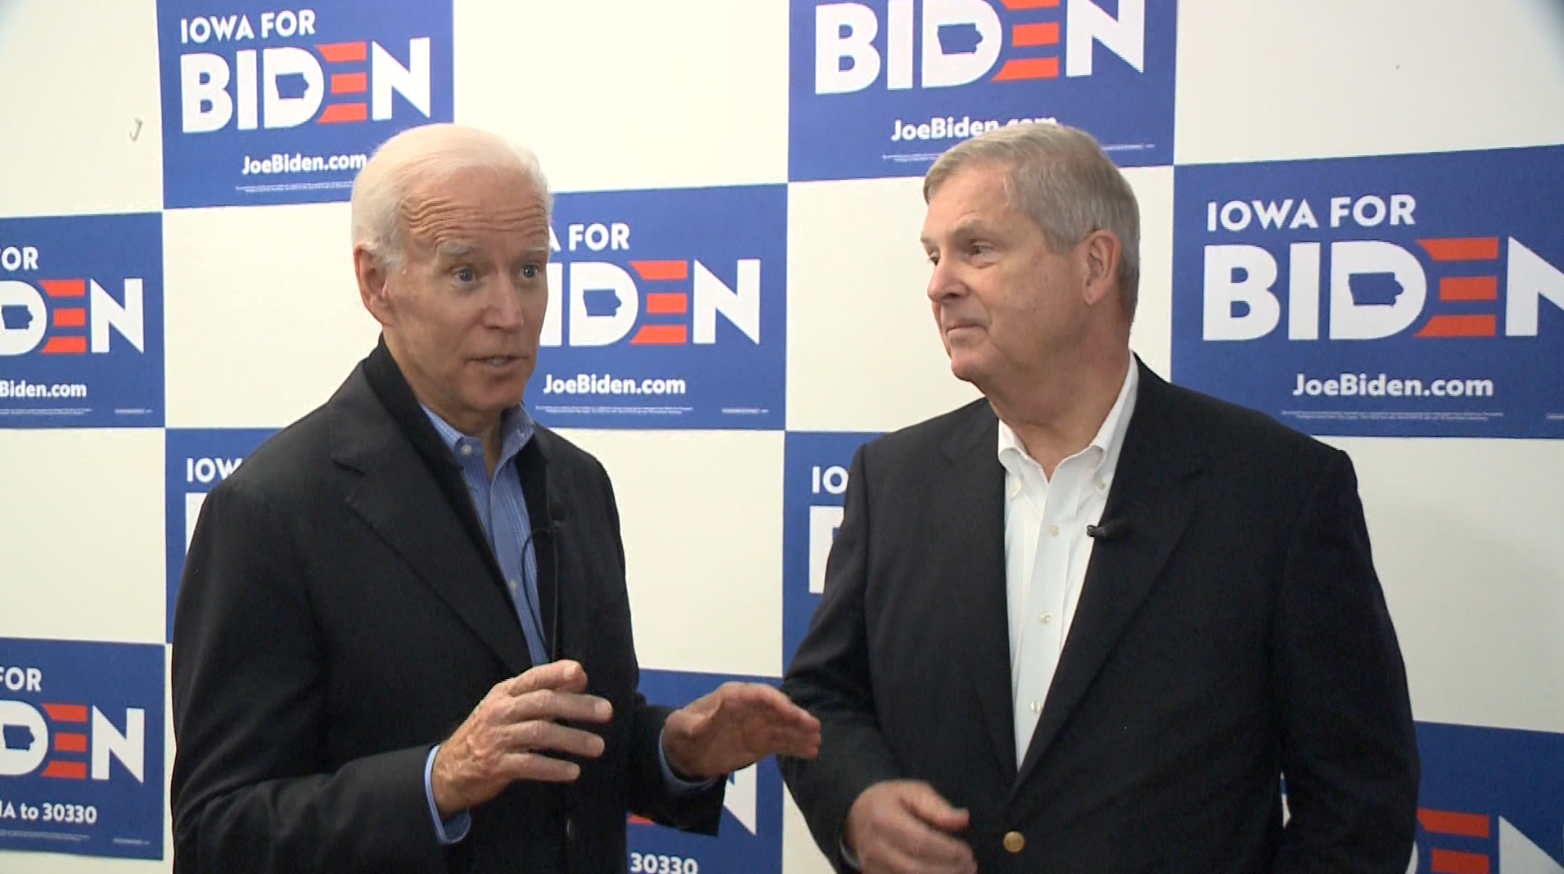 Insiders 12/1/19: Tom Vilsack Explains Why Joe Biden is the 'Most Electable' Candidate Against President Trump 1